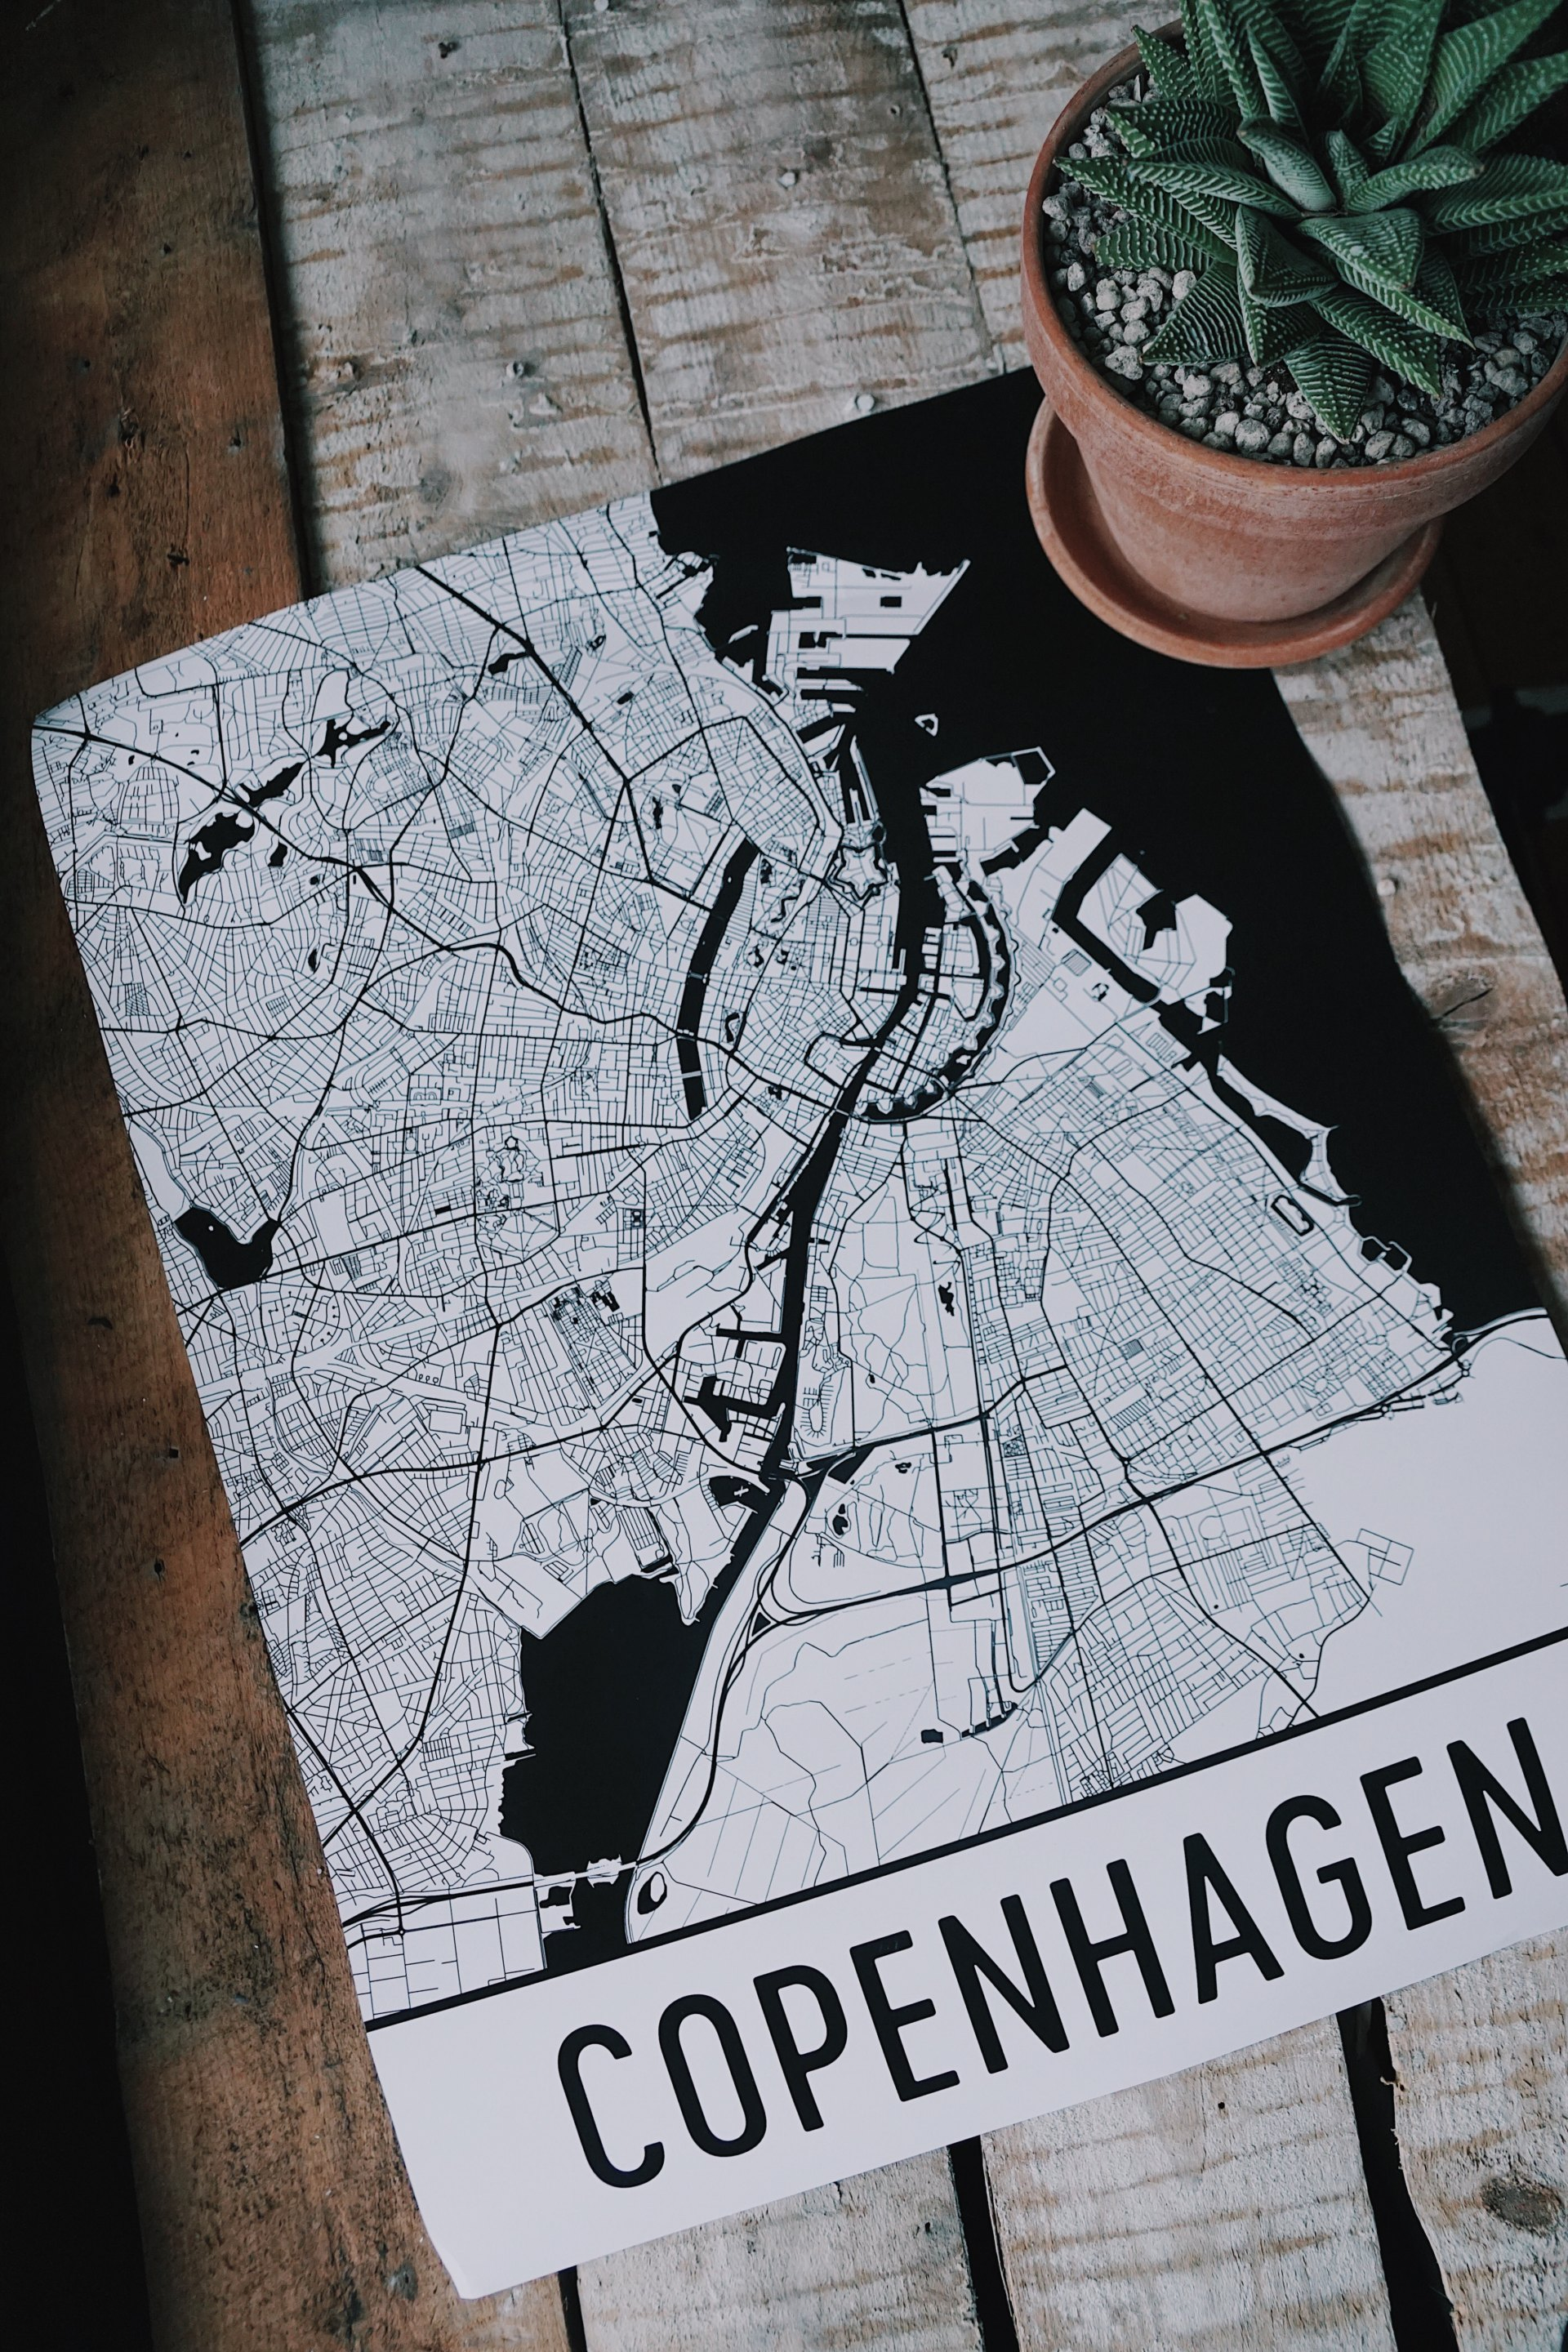 Copenhagen City Print – Modern Map Art